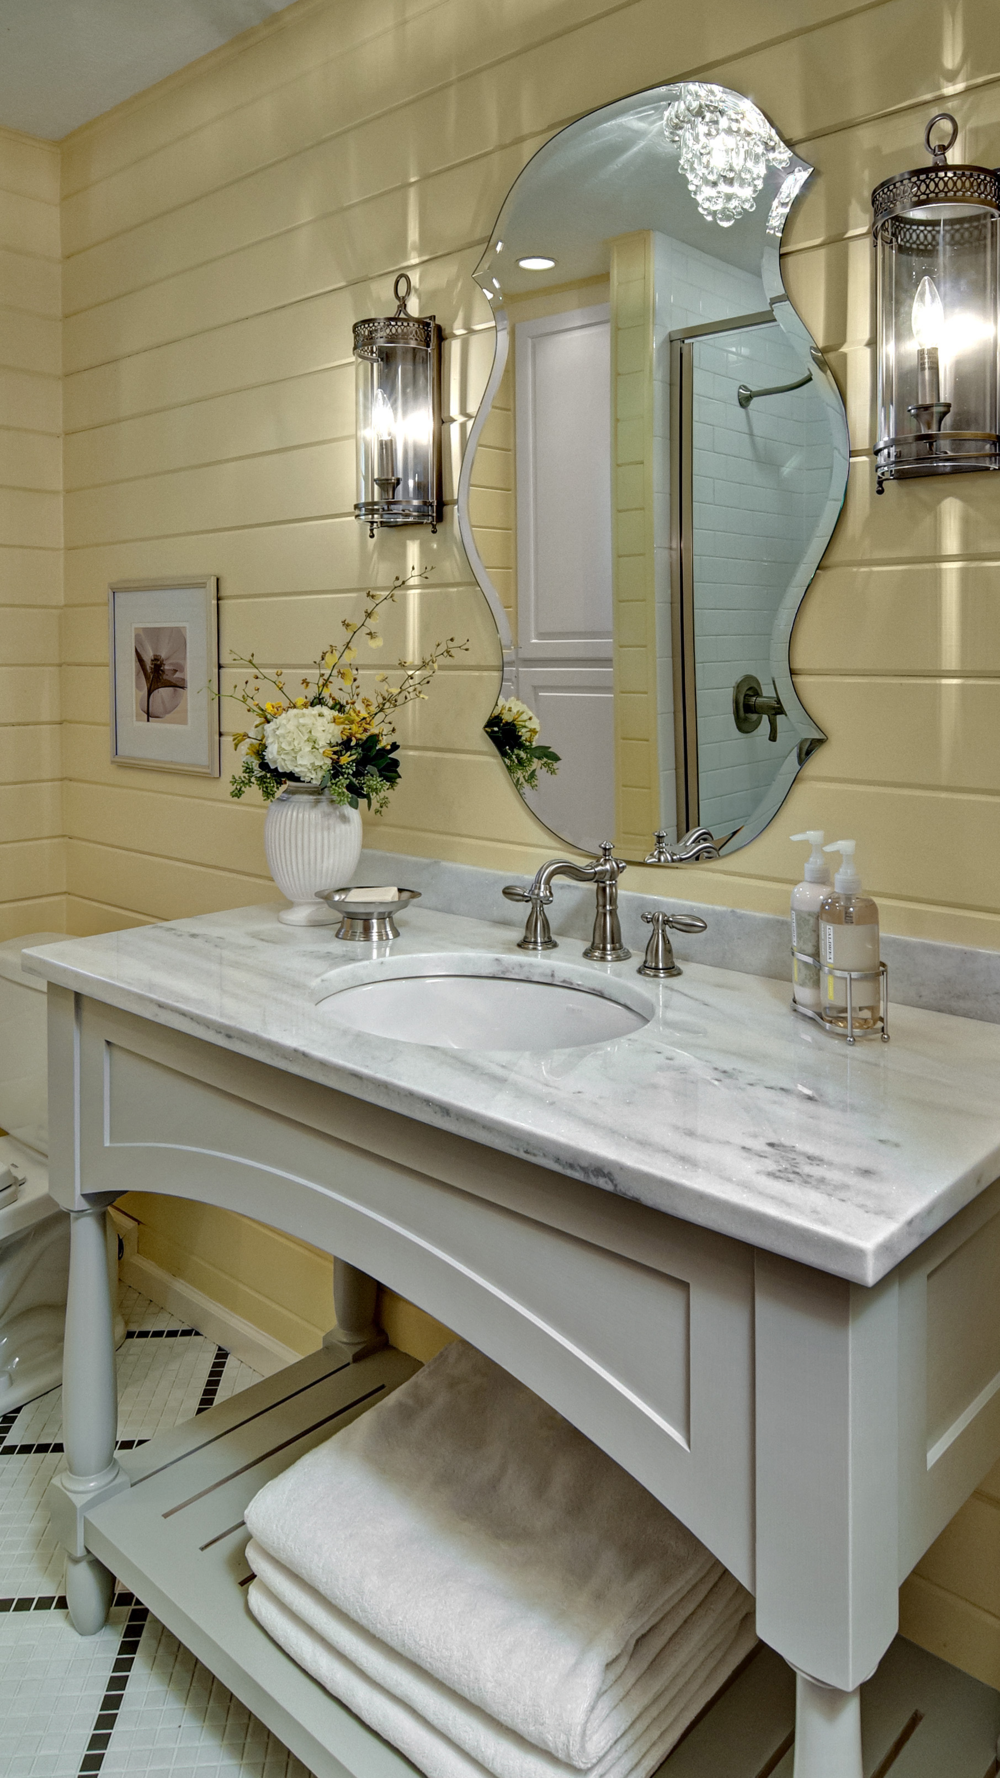 Cottage Chic Bathroom This Cottage Chic Bathroom is a perfect fit for the  yellow slat-boards, custom built cabinetry with Carrara marble top, rustic sconces and beveled mirror to swoon for.